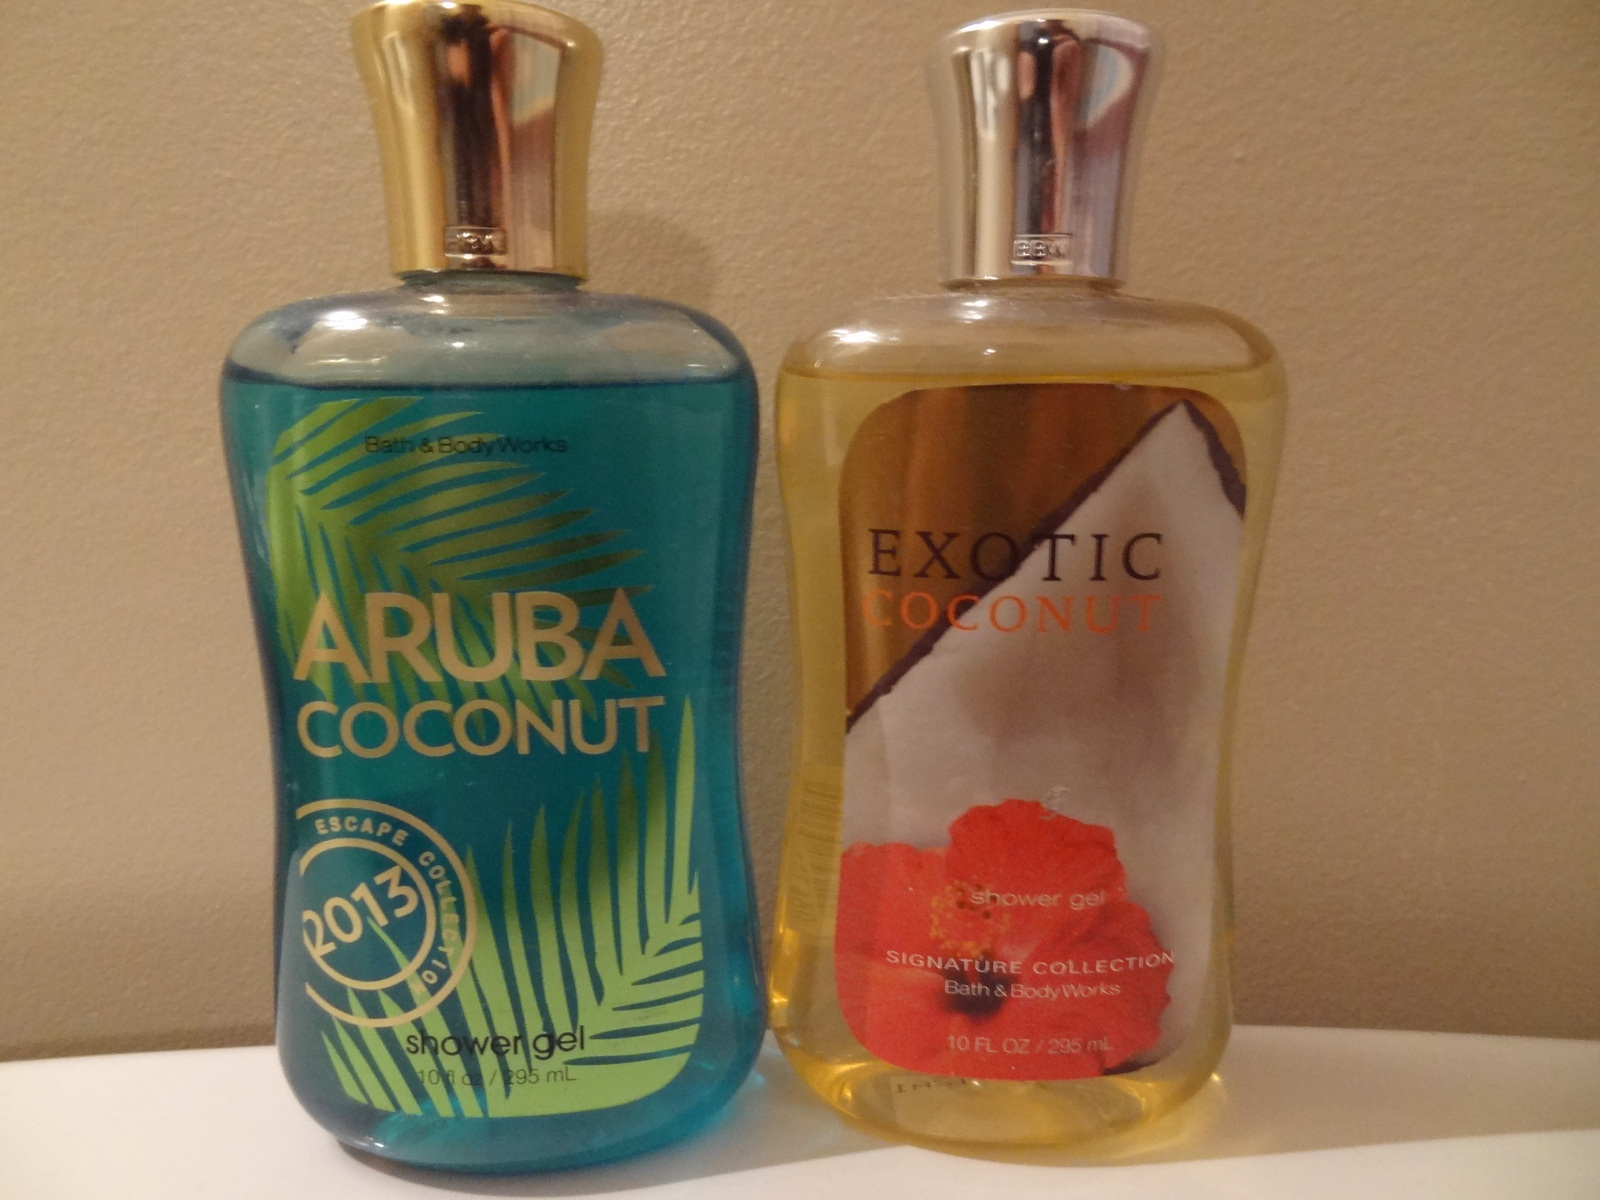 LOT OF 2  BATH & BODY WORKS  ARUBA COCONUT & EXOTIC COCNUT  NEW SHOWER GEL 10 OZ